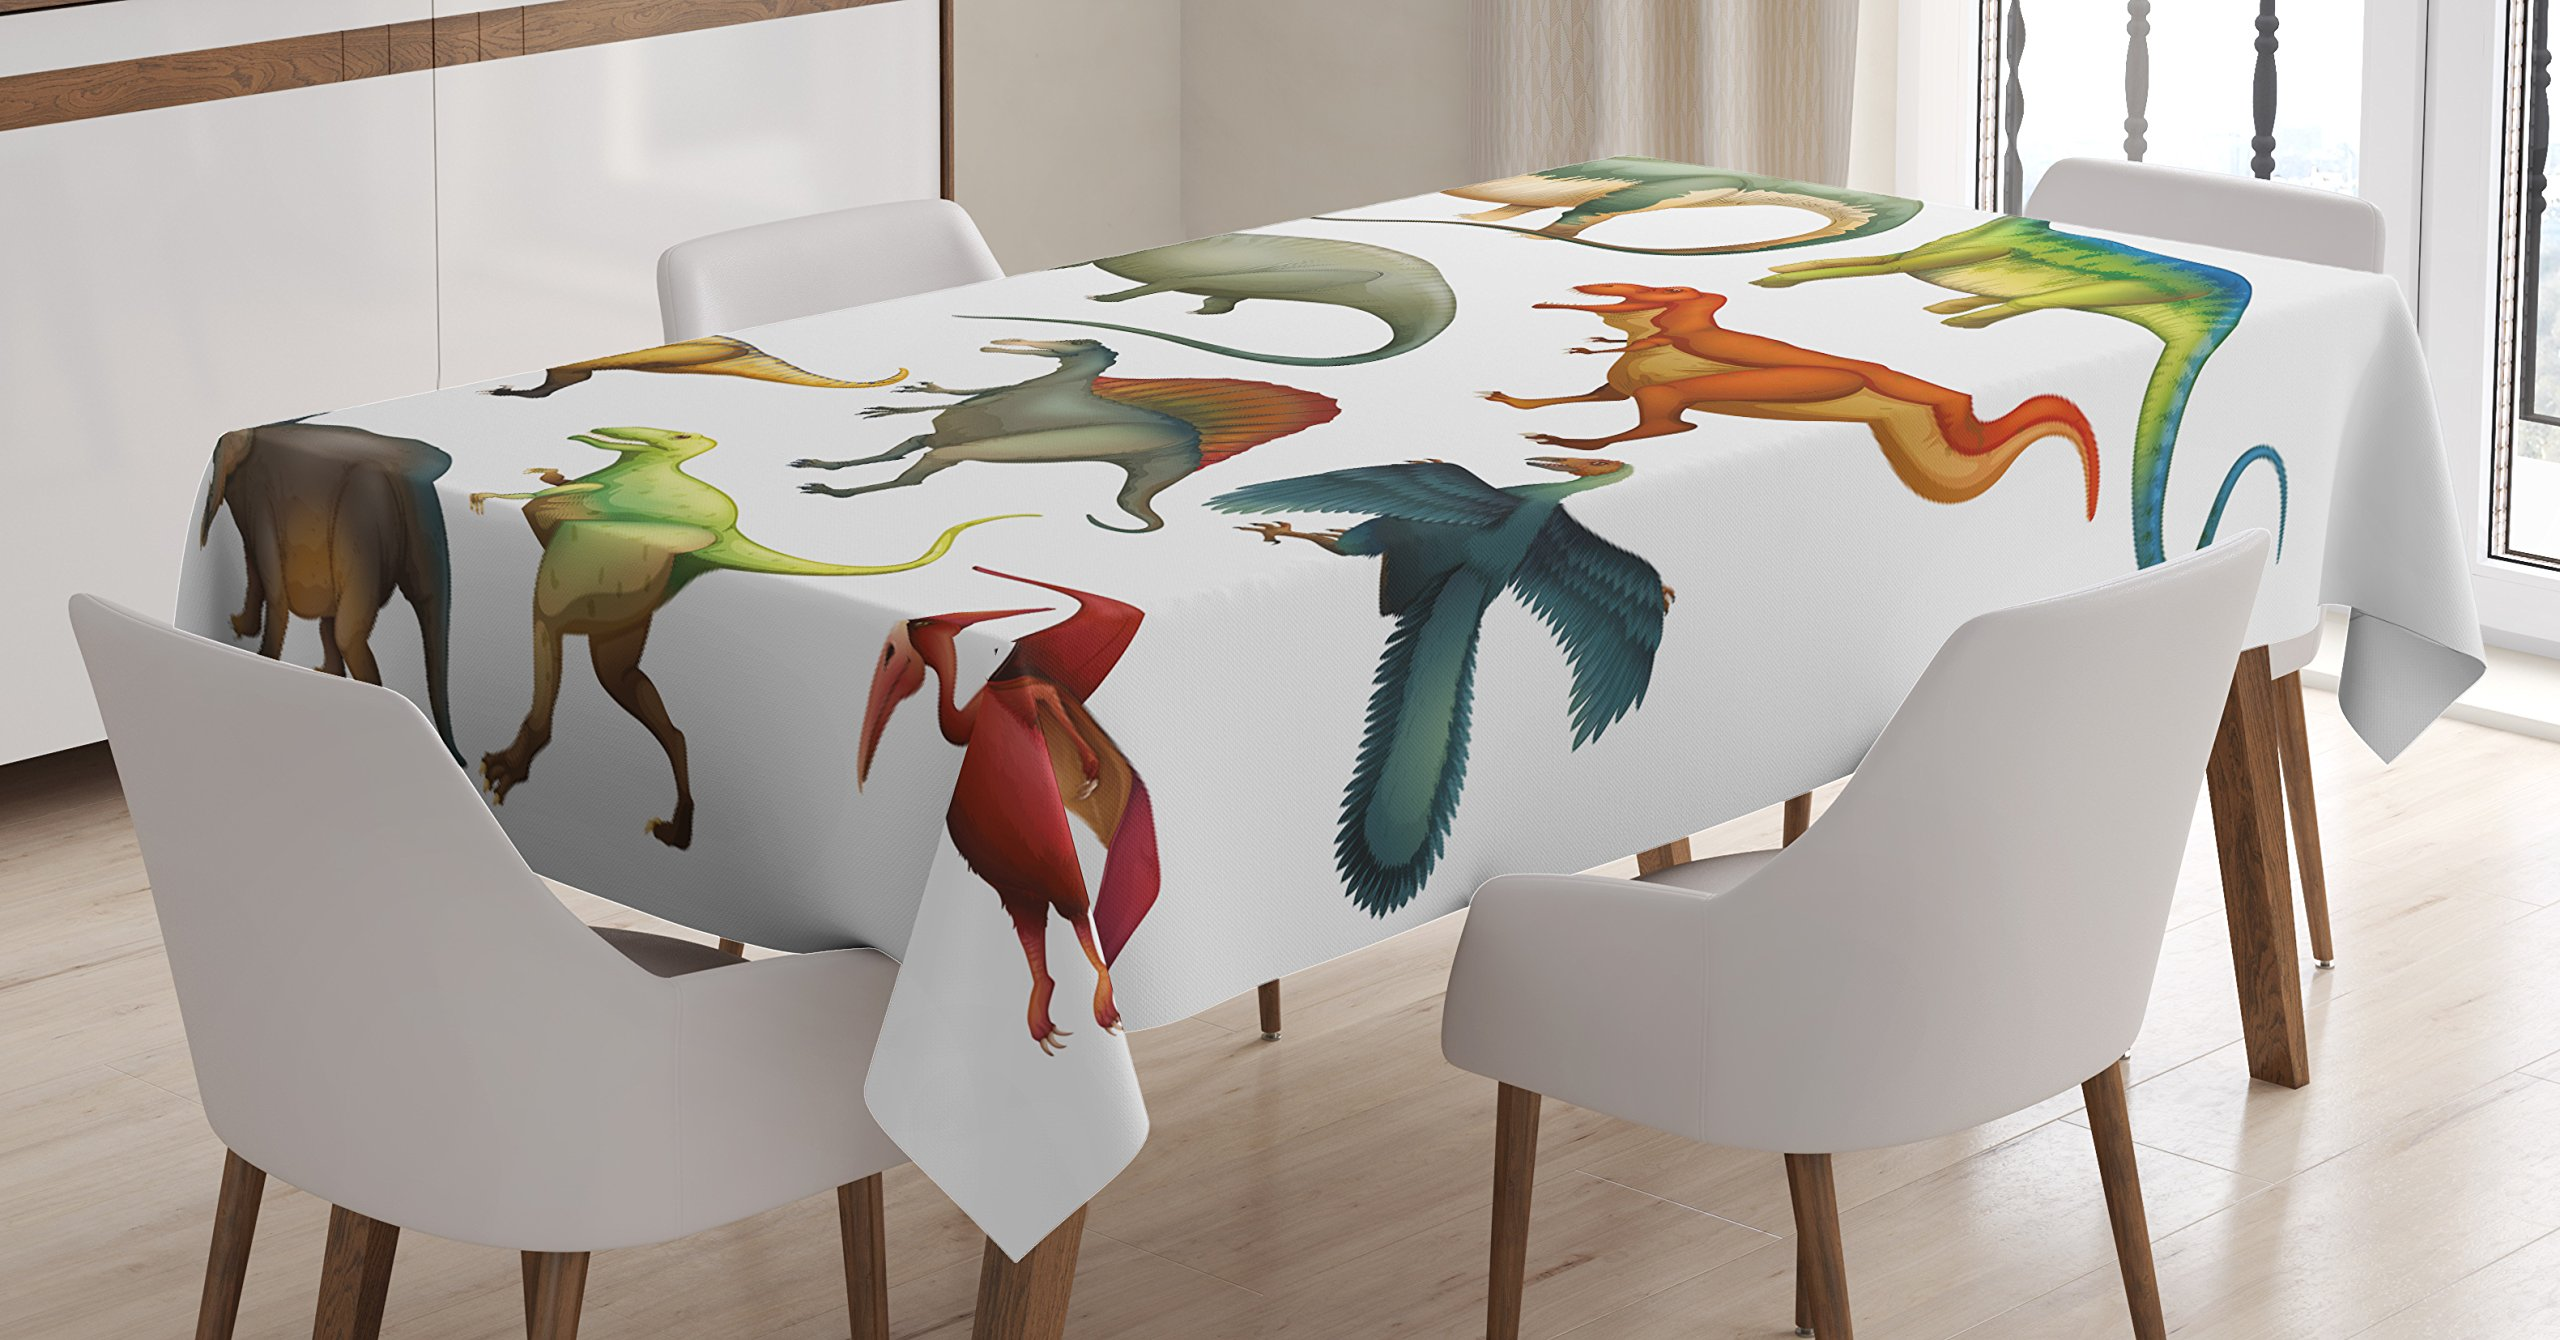 Ambesonne Dinosaur Tablecloth by, Various Different Ancient Animals from Jurassic Period Cartoon Collection Mammals, Dining Room Kitchen Rectangular Table Cover, 60 W X 84 L Inches, Multicolor